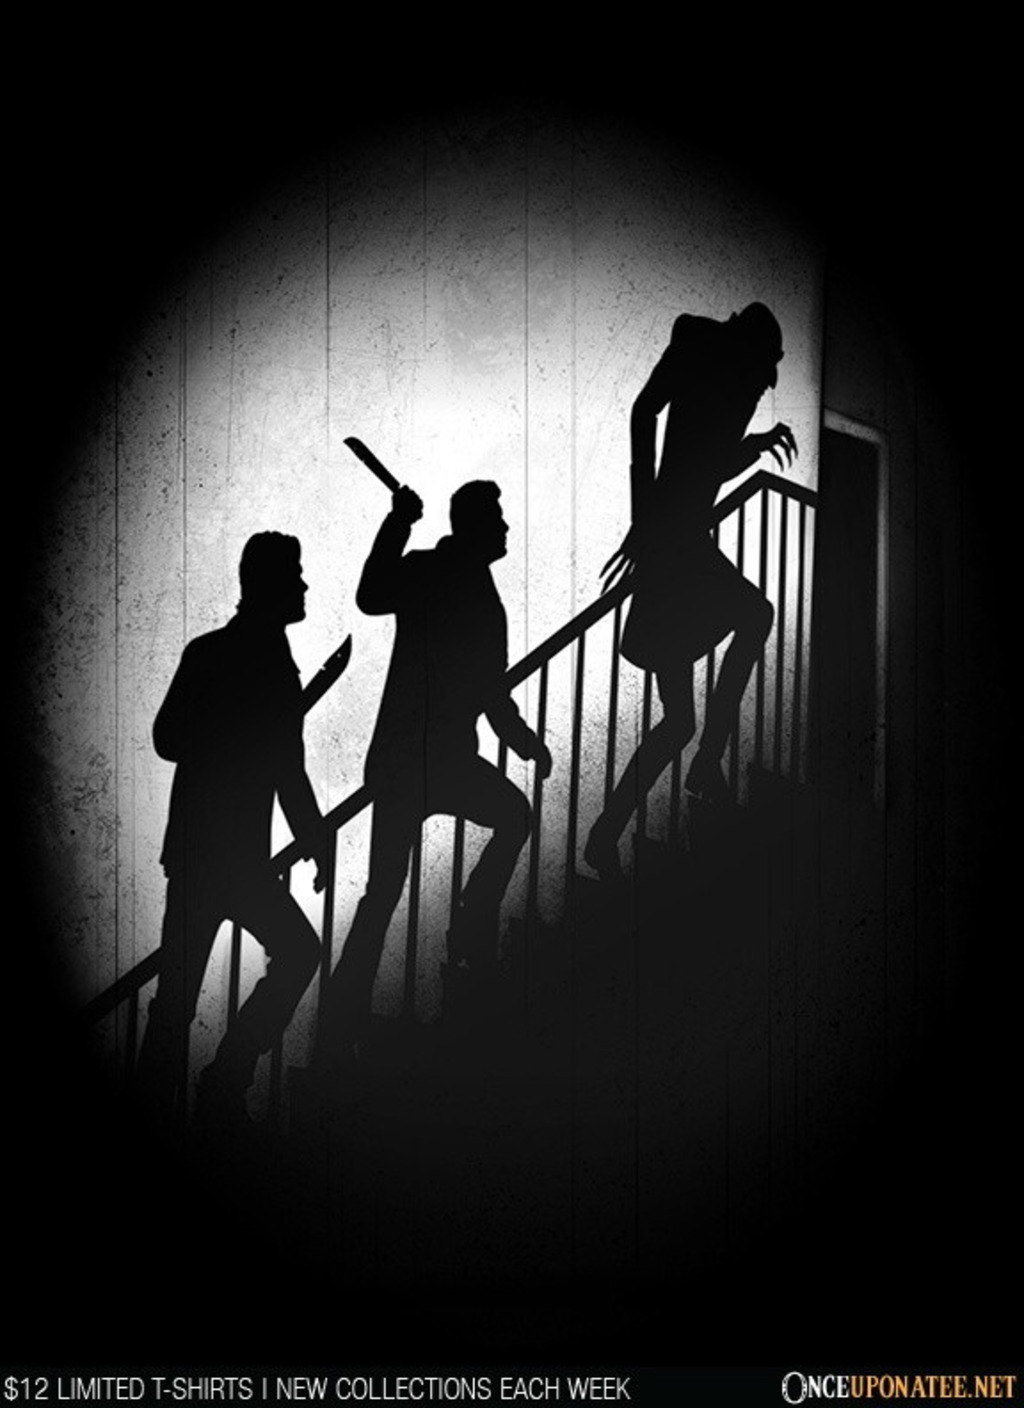 Once Upon a Tee: The Nosferatu Hunters